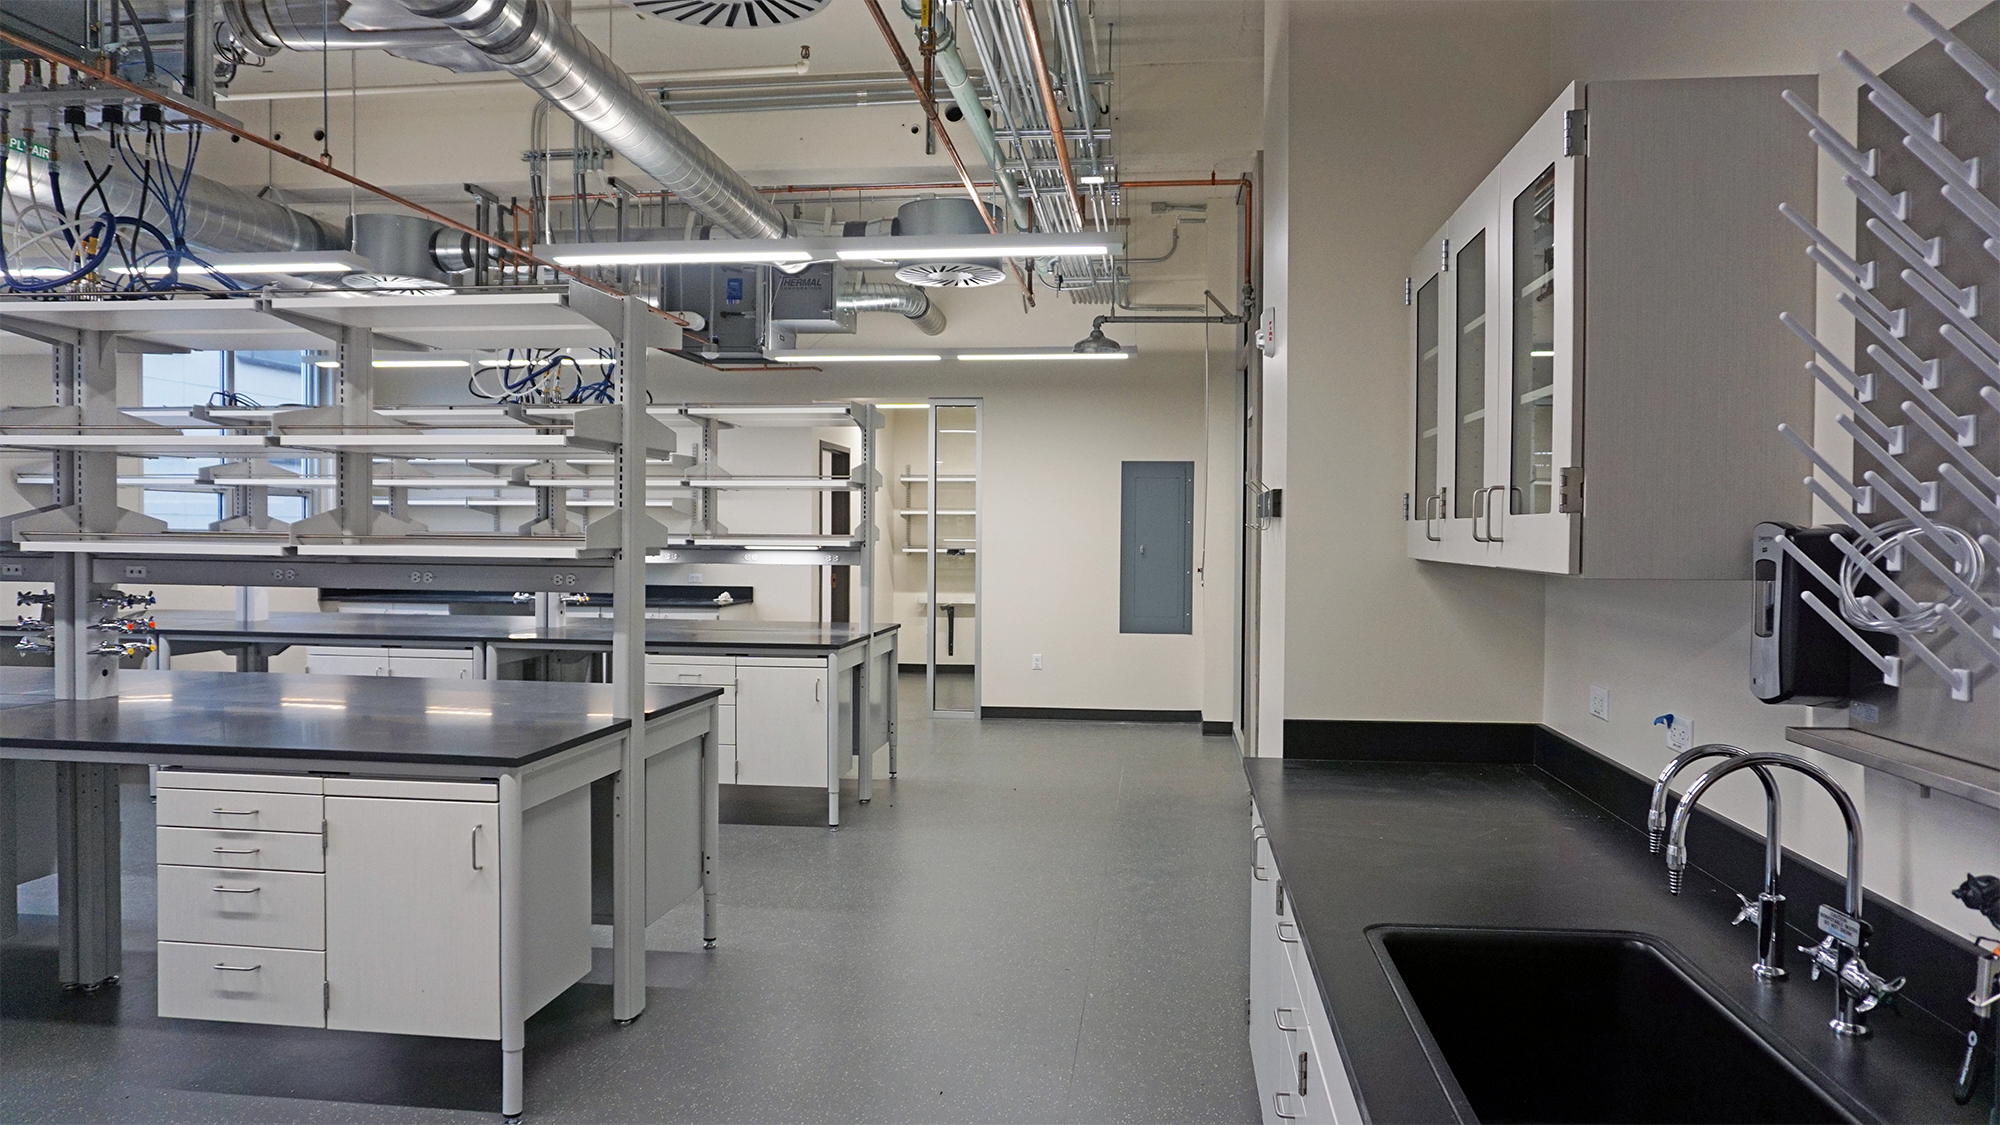 University of Oregon Pacific Hall Research Labs